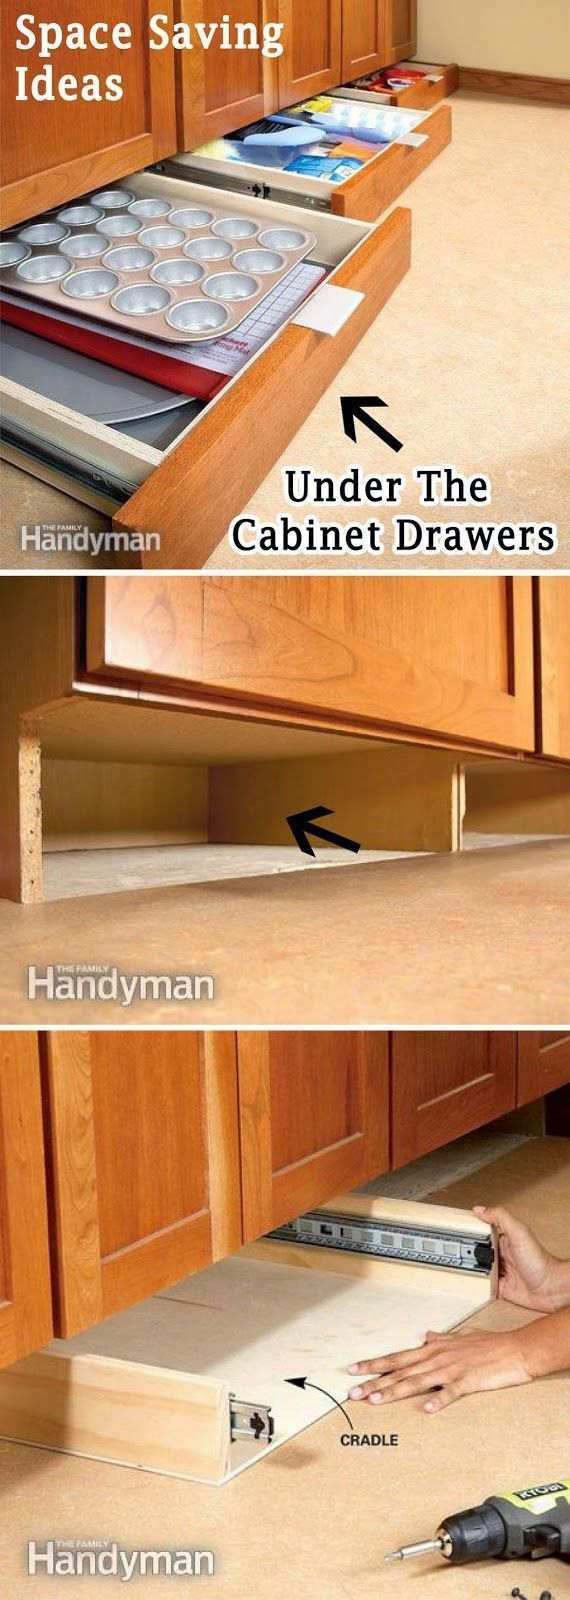 11 Creative and Clever Space Saving Ideas 3                                                                                                                                                                                 More